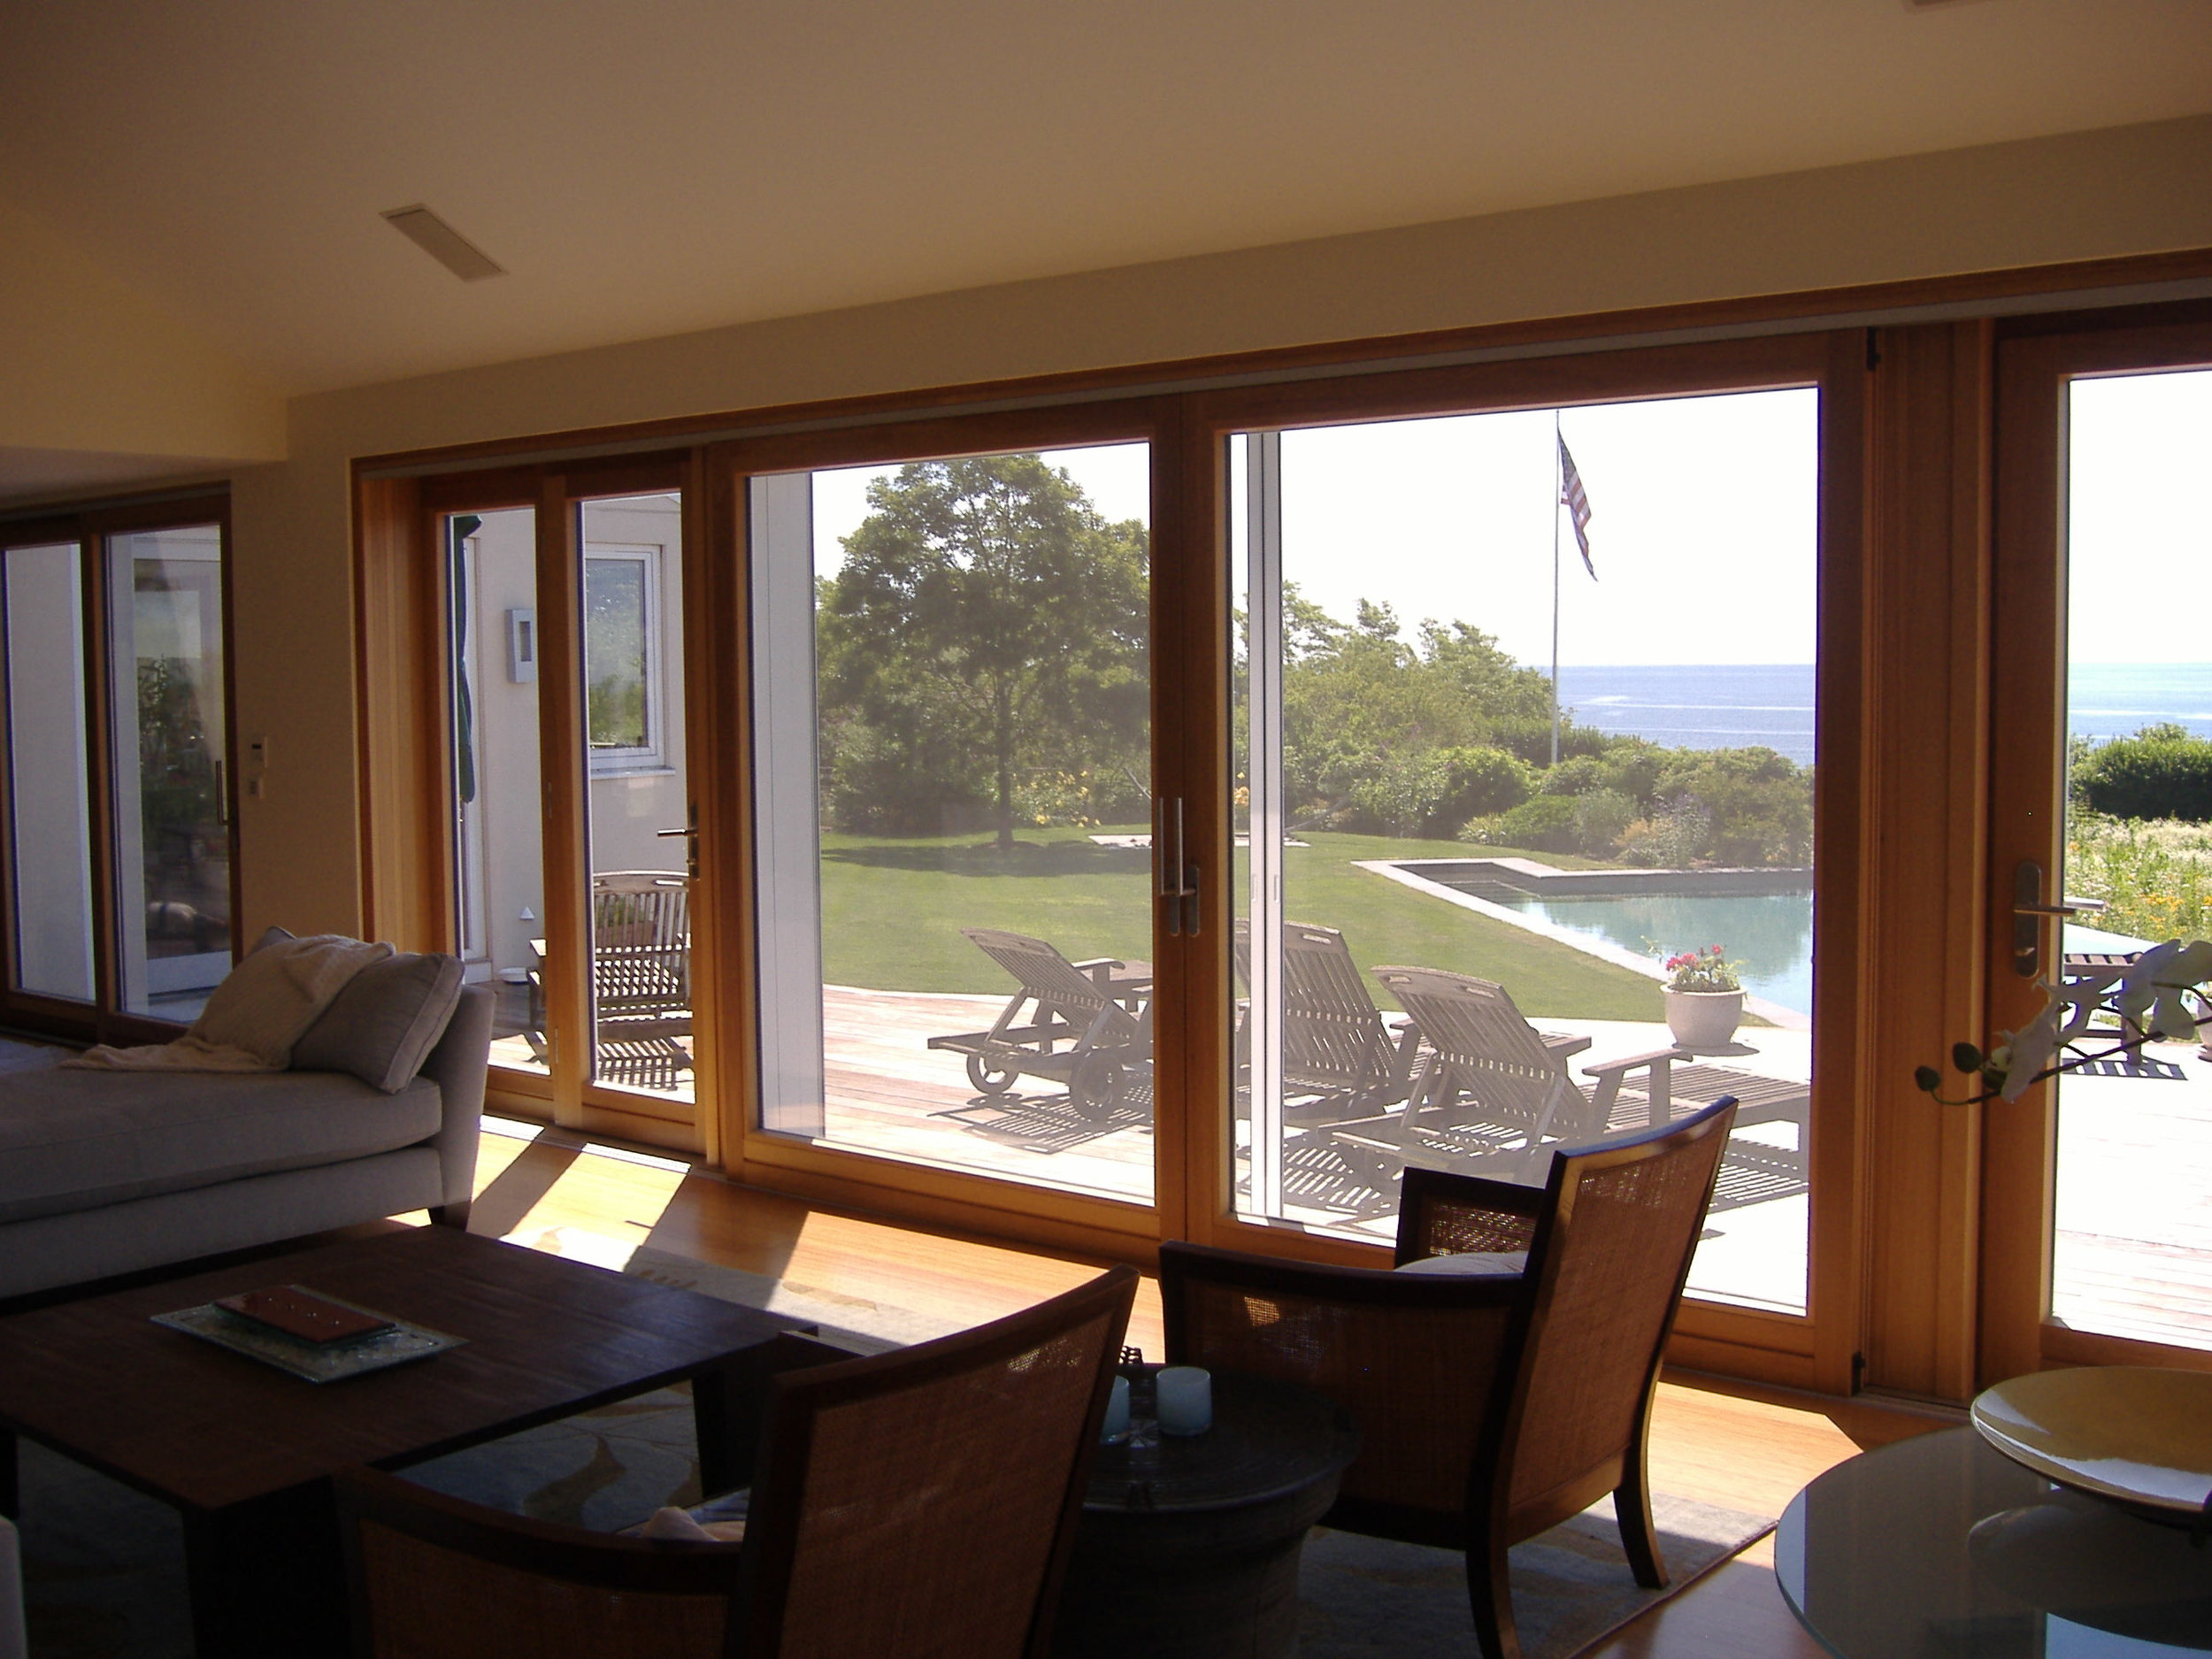 Custom Lift and Slide Door with French Doors as Sidelights